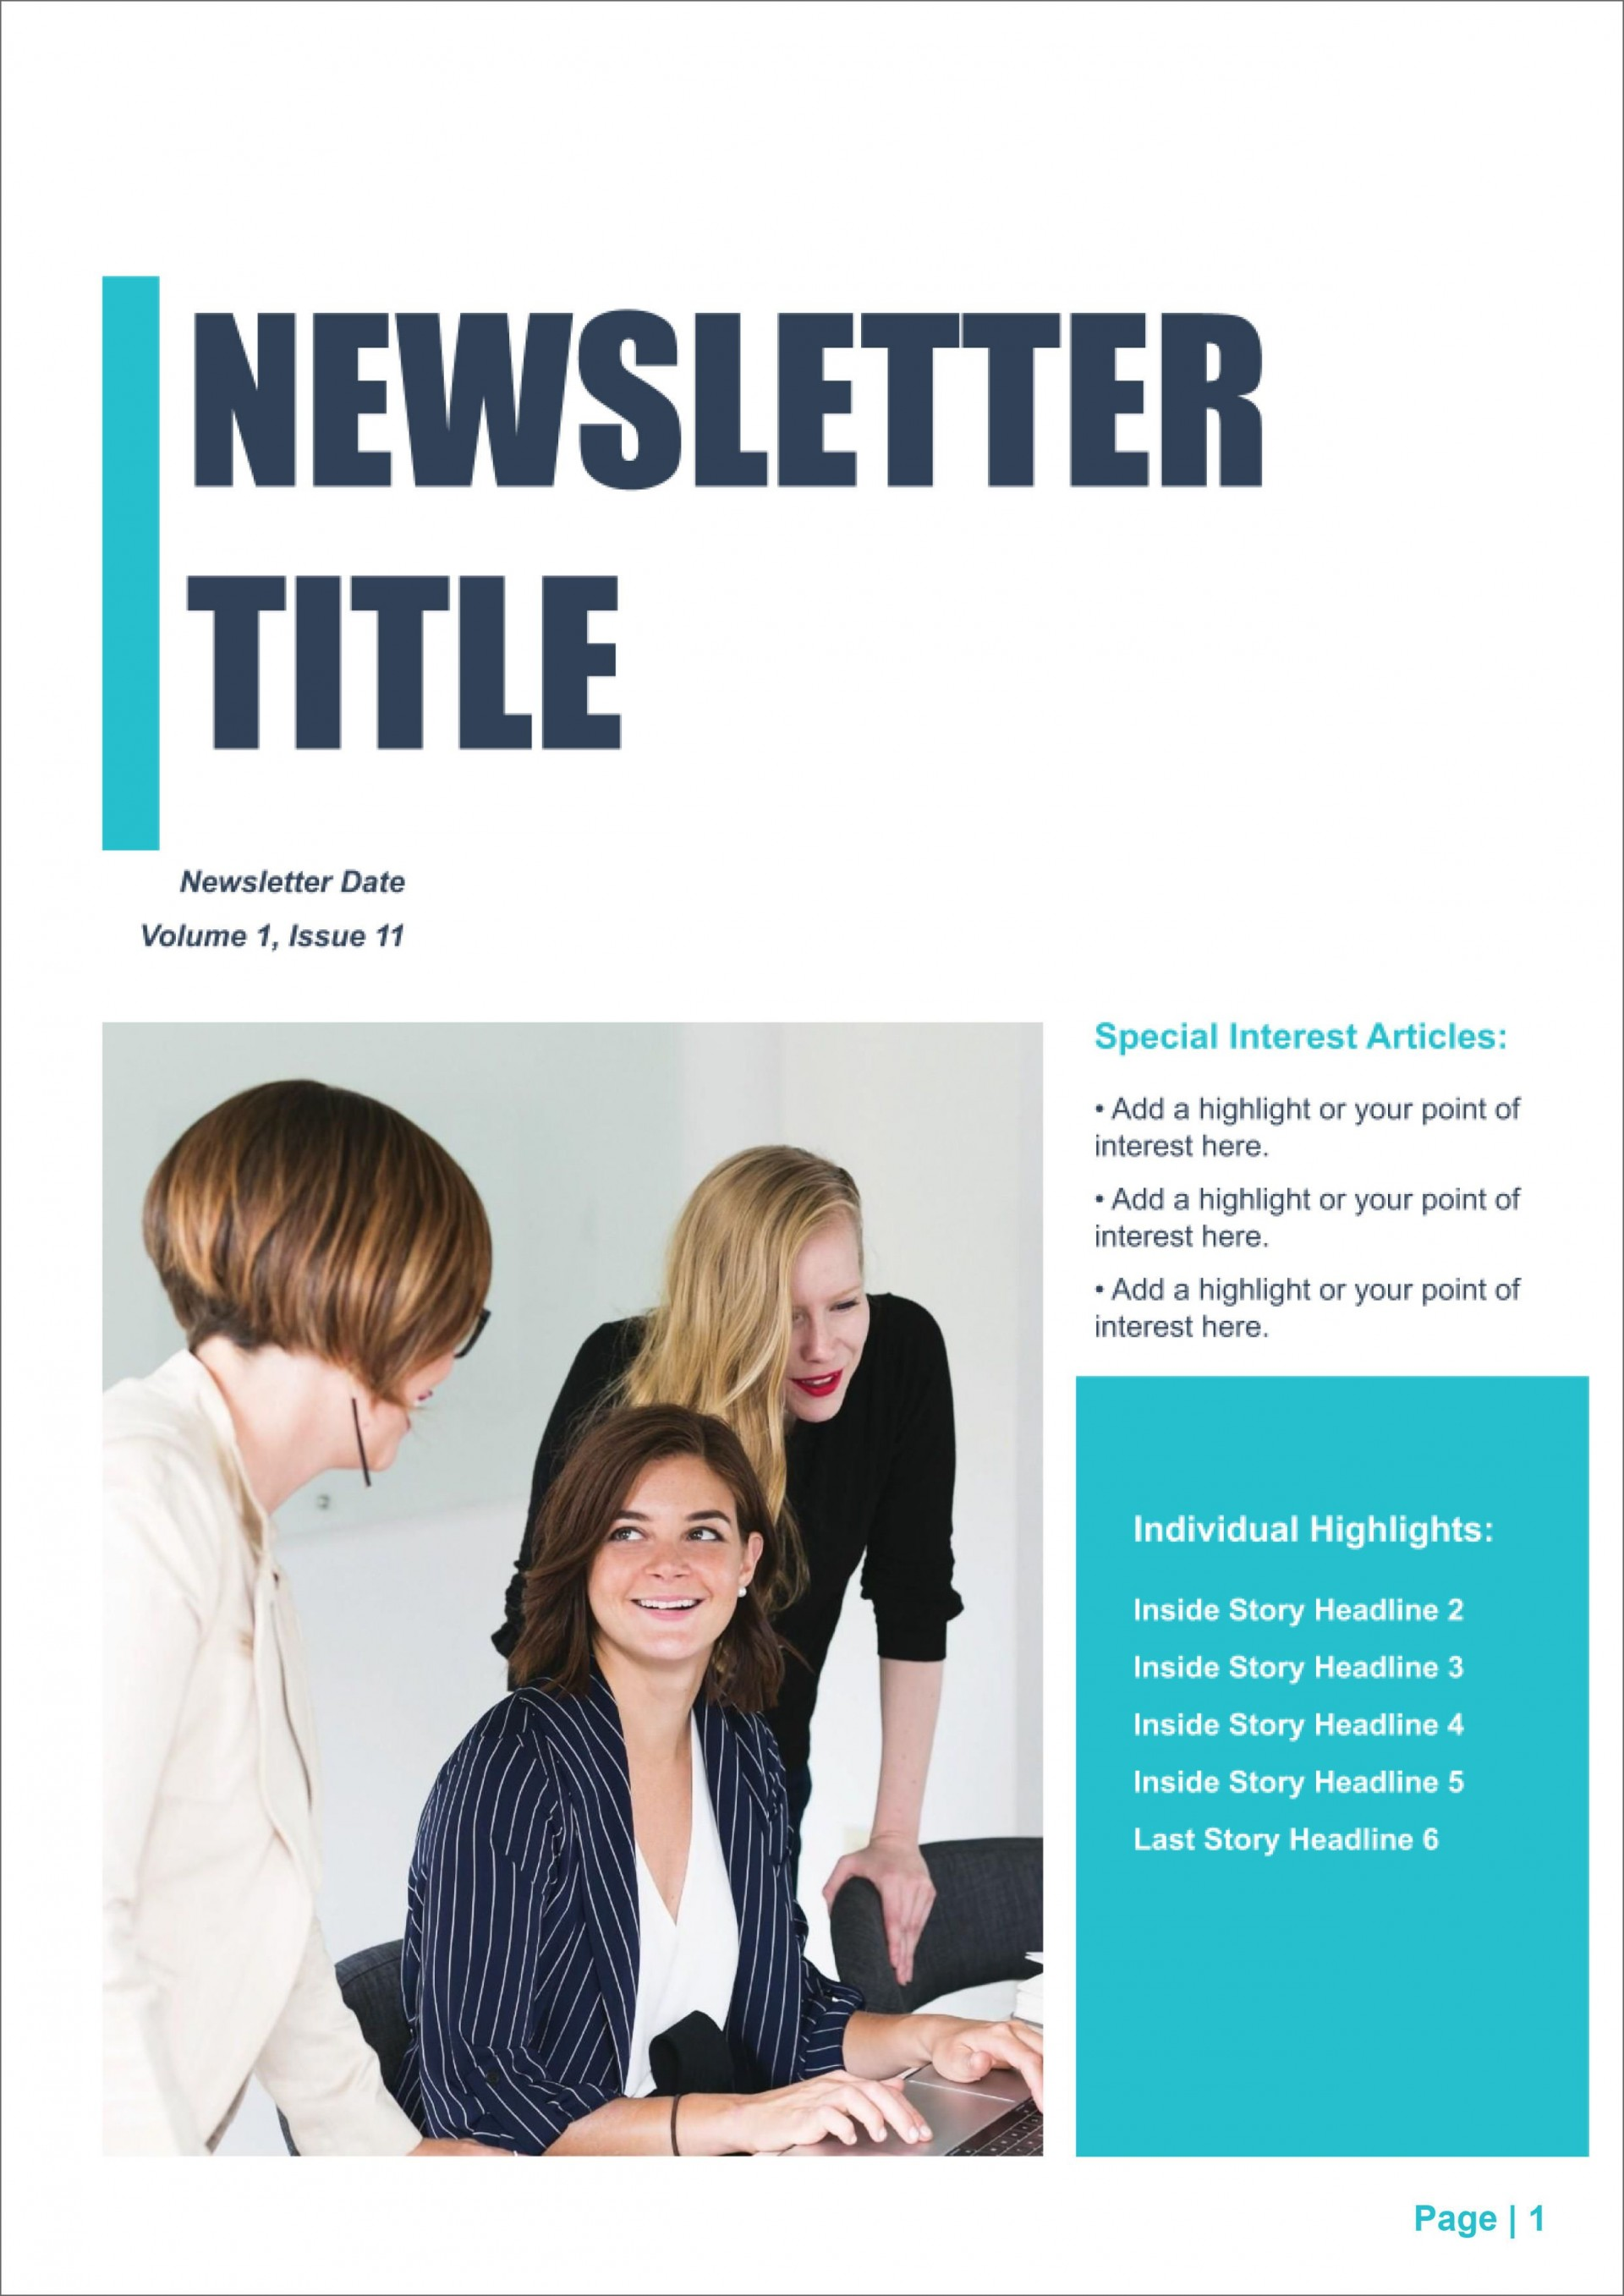 004 Simple High School Newsletter Template Free Download Inspiration 1920